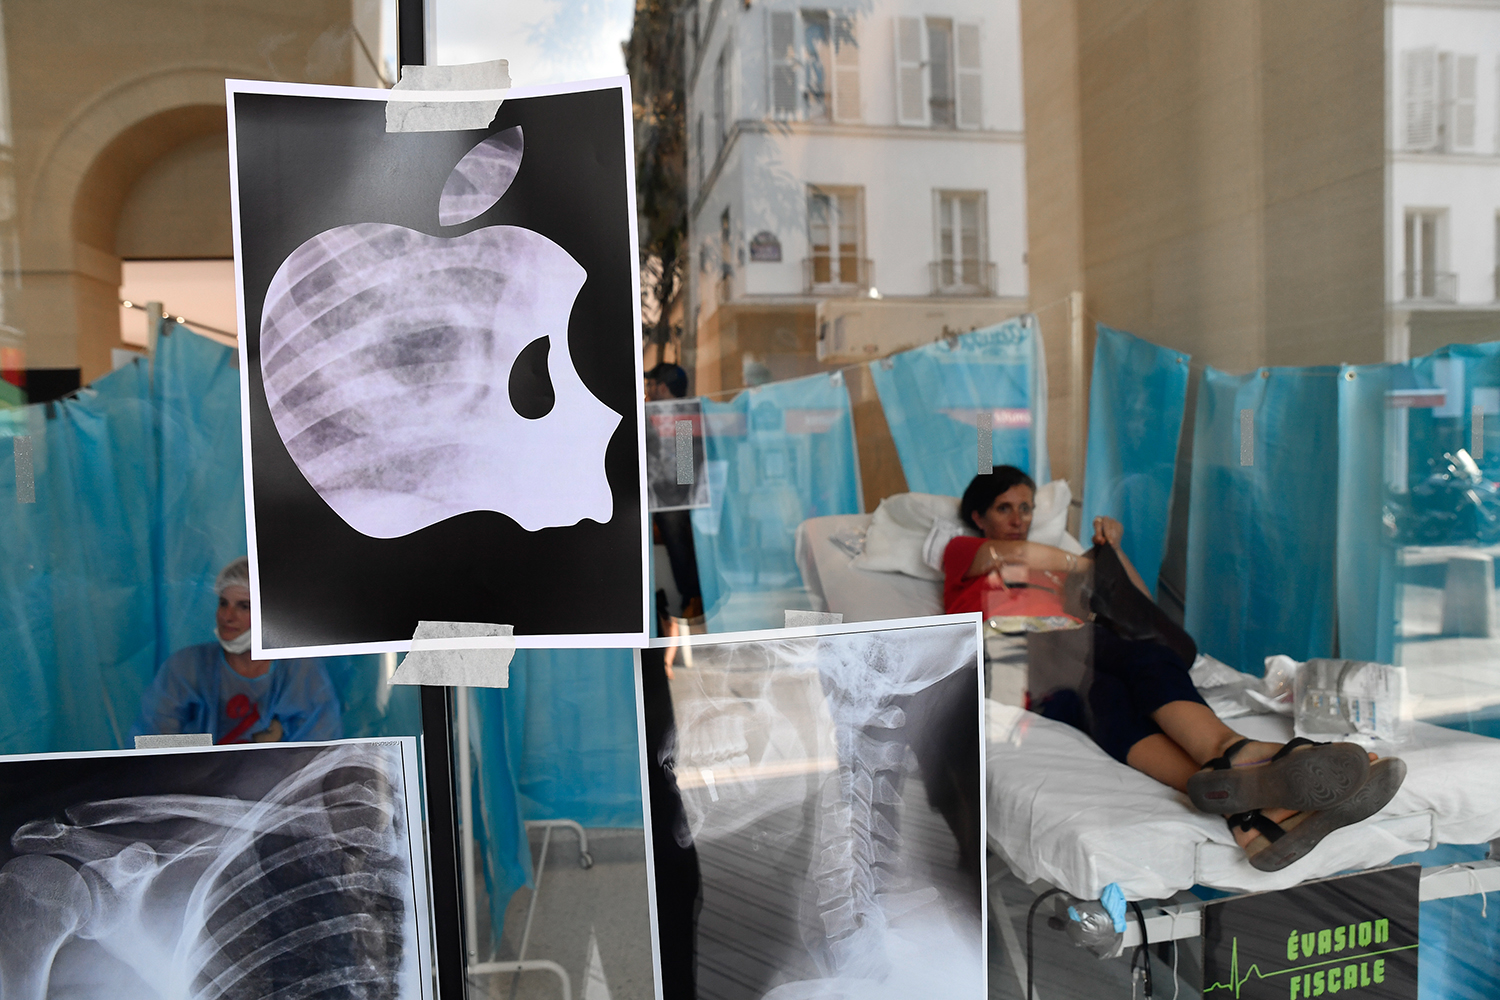 Activists set up a faux hospital in the Apple Store in Saint-Germain near Paris, France, on June 30, 2018, in protest of Apple's tax evasion and government inaction on tax havens and health care funding.